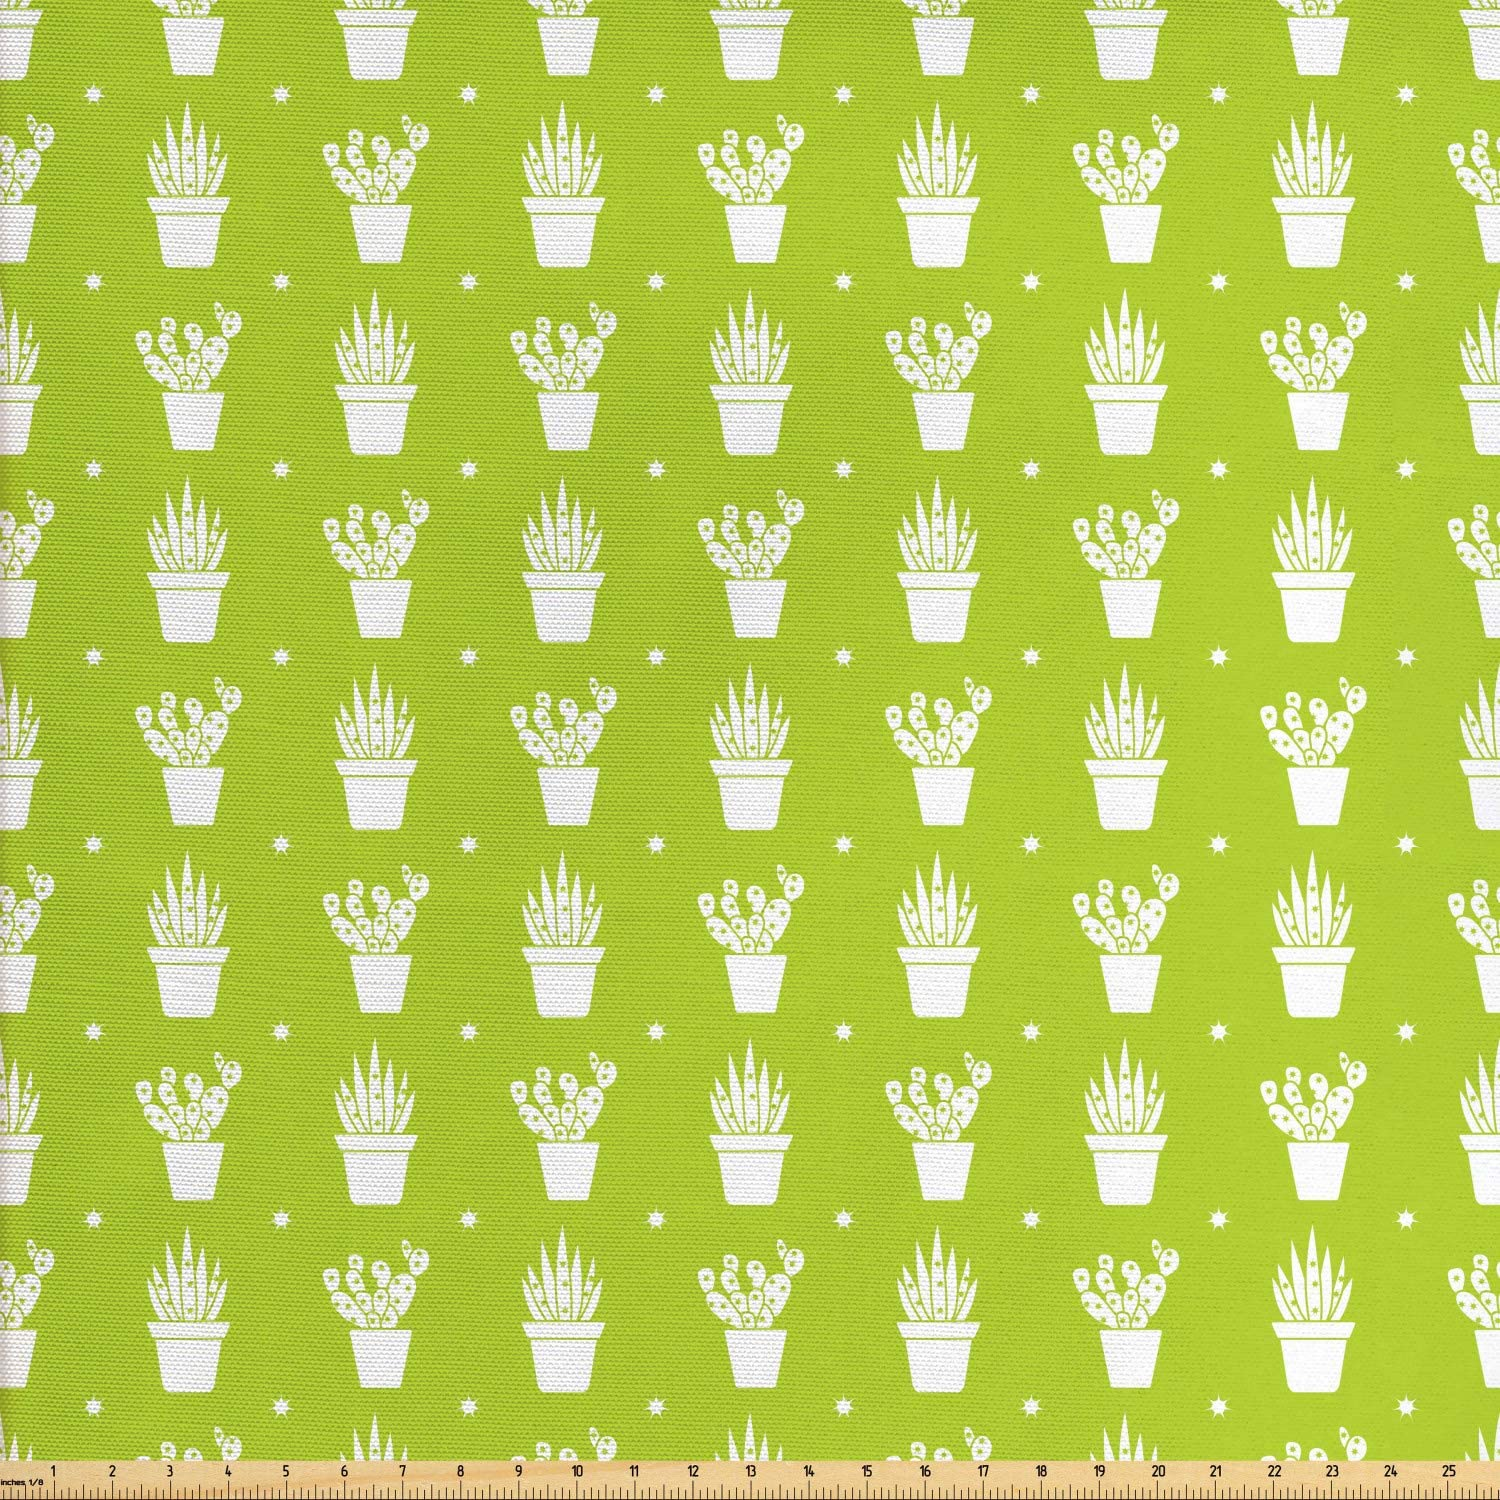 Ambesonne Cactus Print Fabric by The Yard, Repetitive Plants in Pots Different Shapes of Exotic Items Stars, Decorative Fabric for Upholstery and Home Accents, 1 Yard, Yellow Green and White